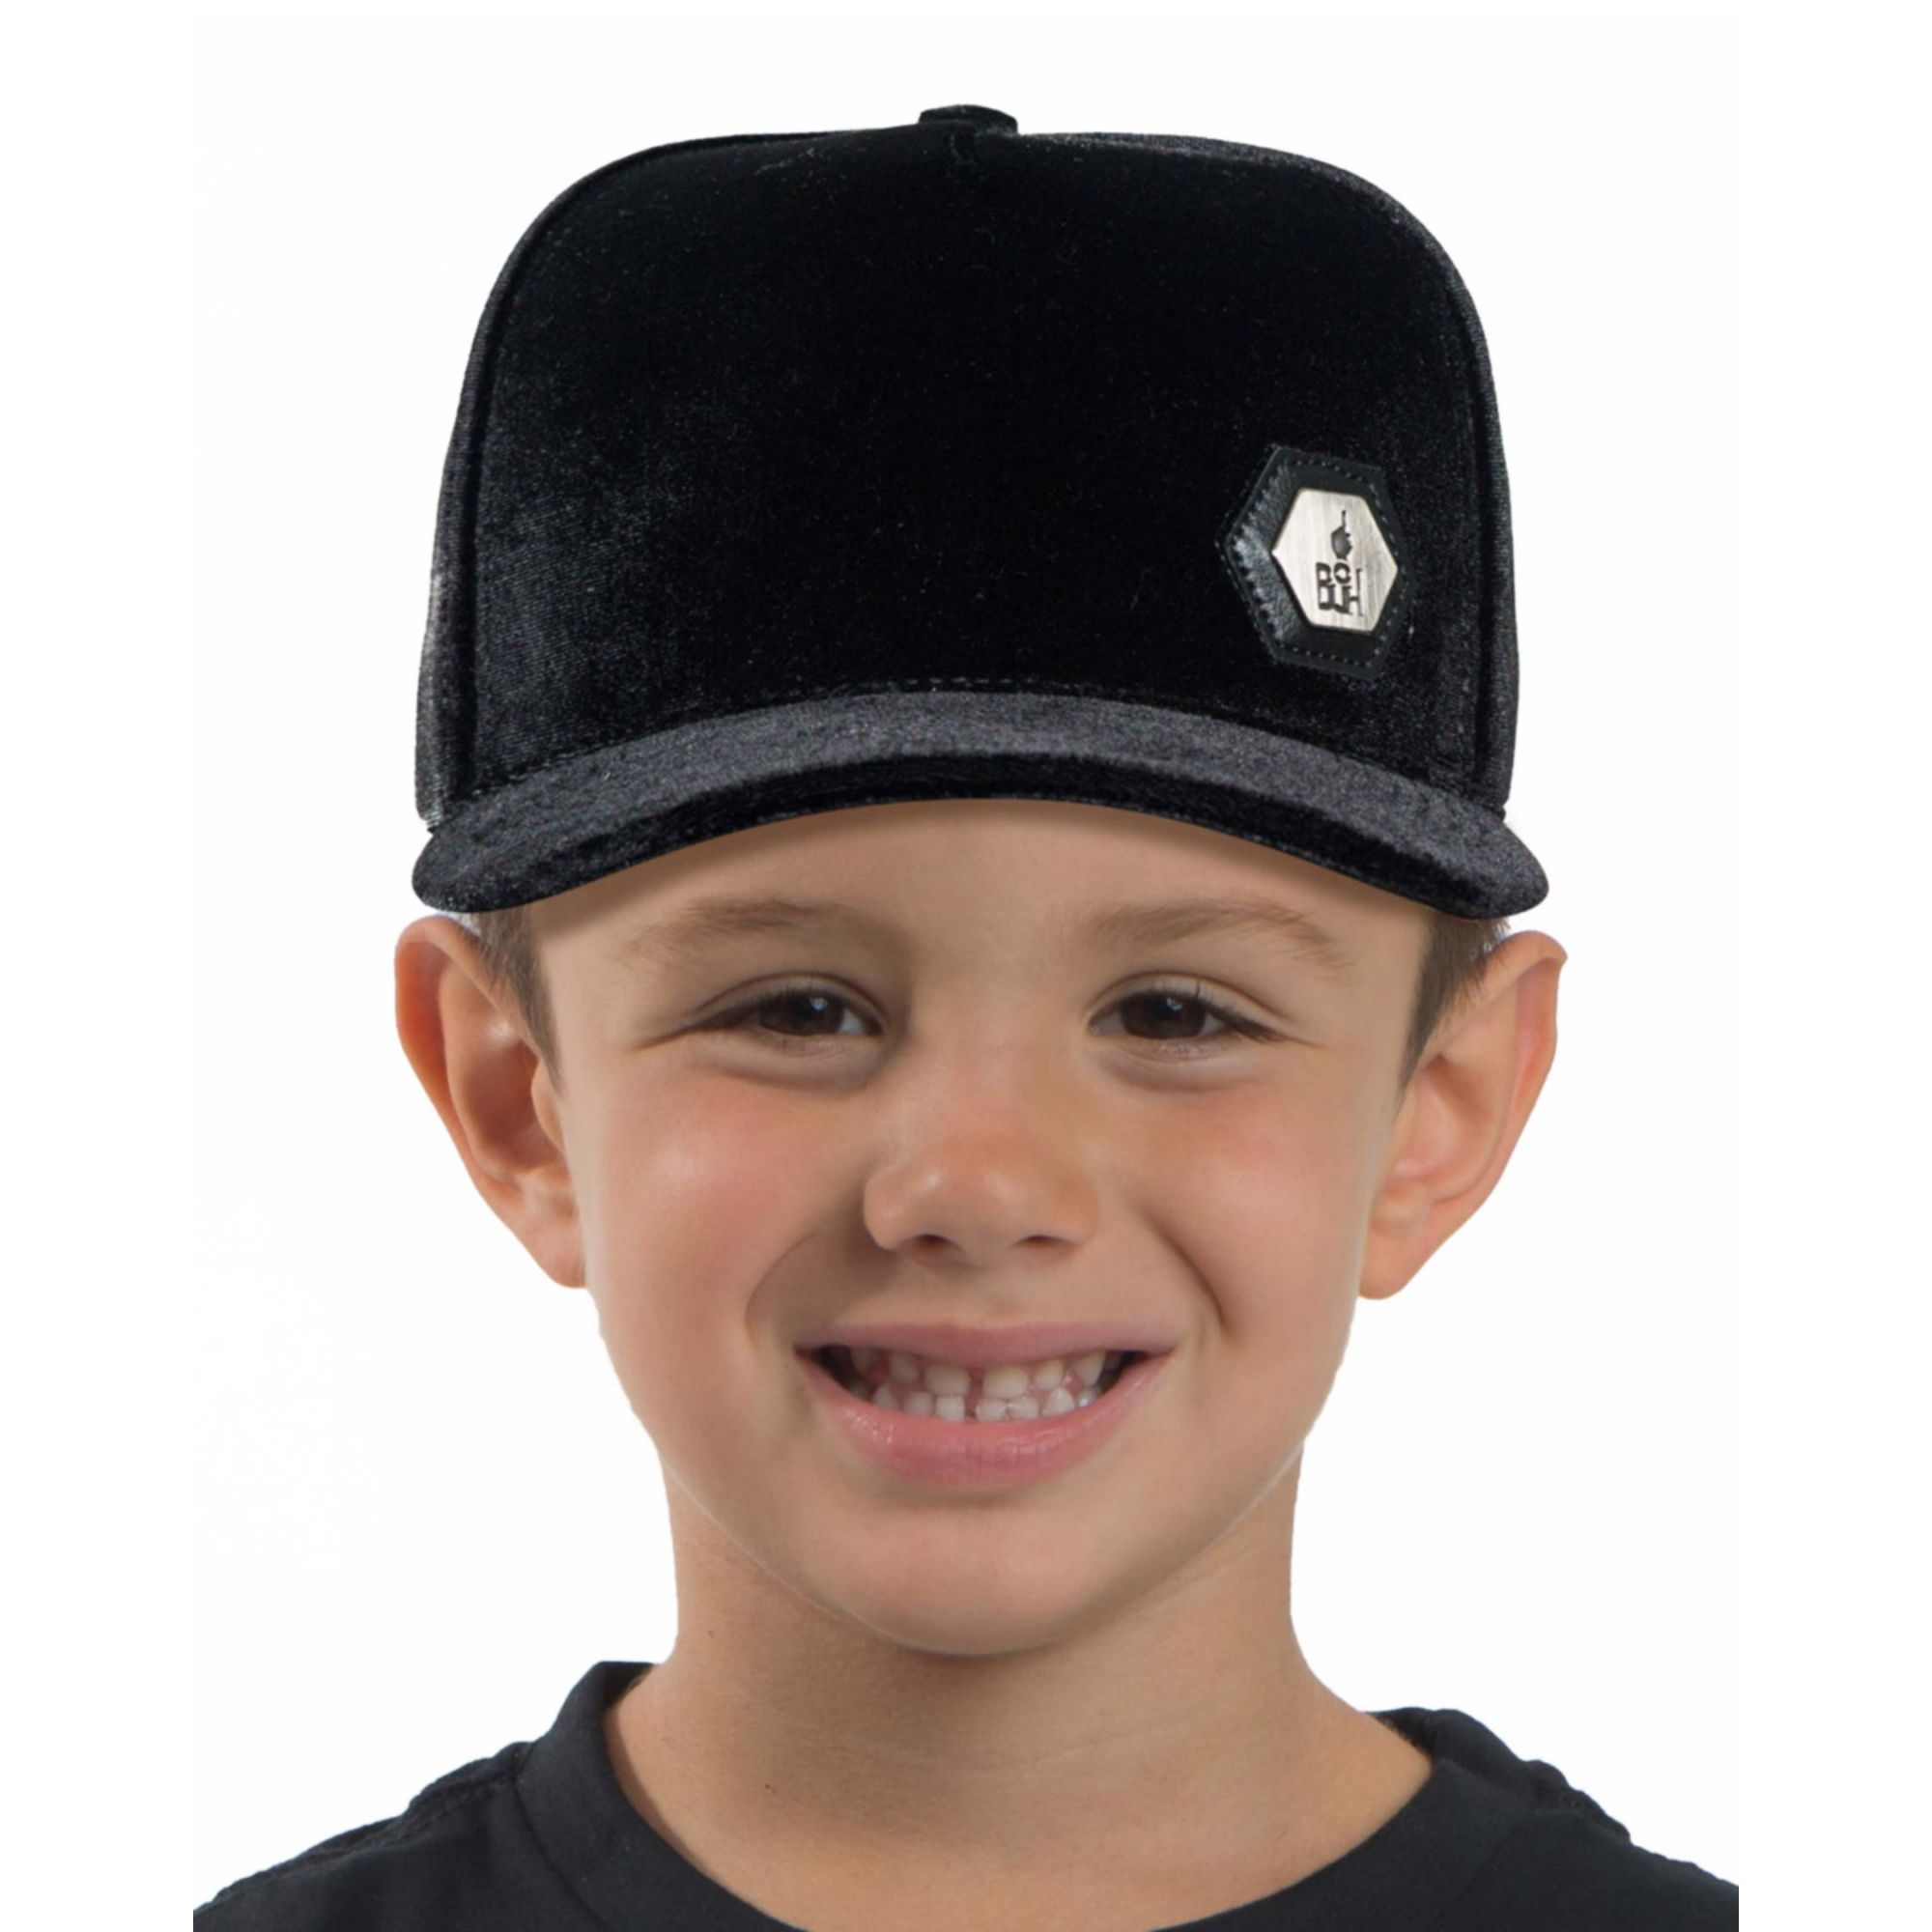 Boné Buh Kids Plush Black